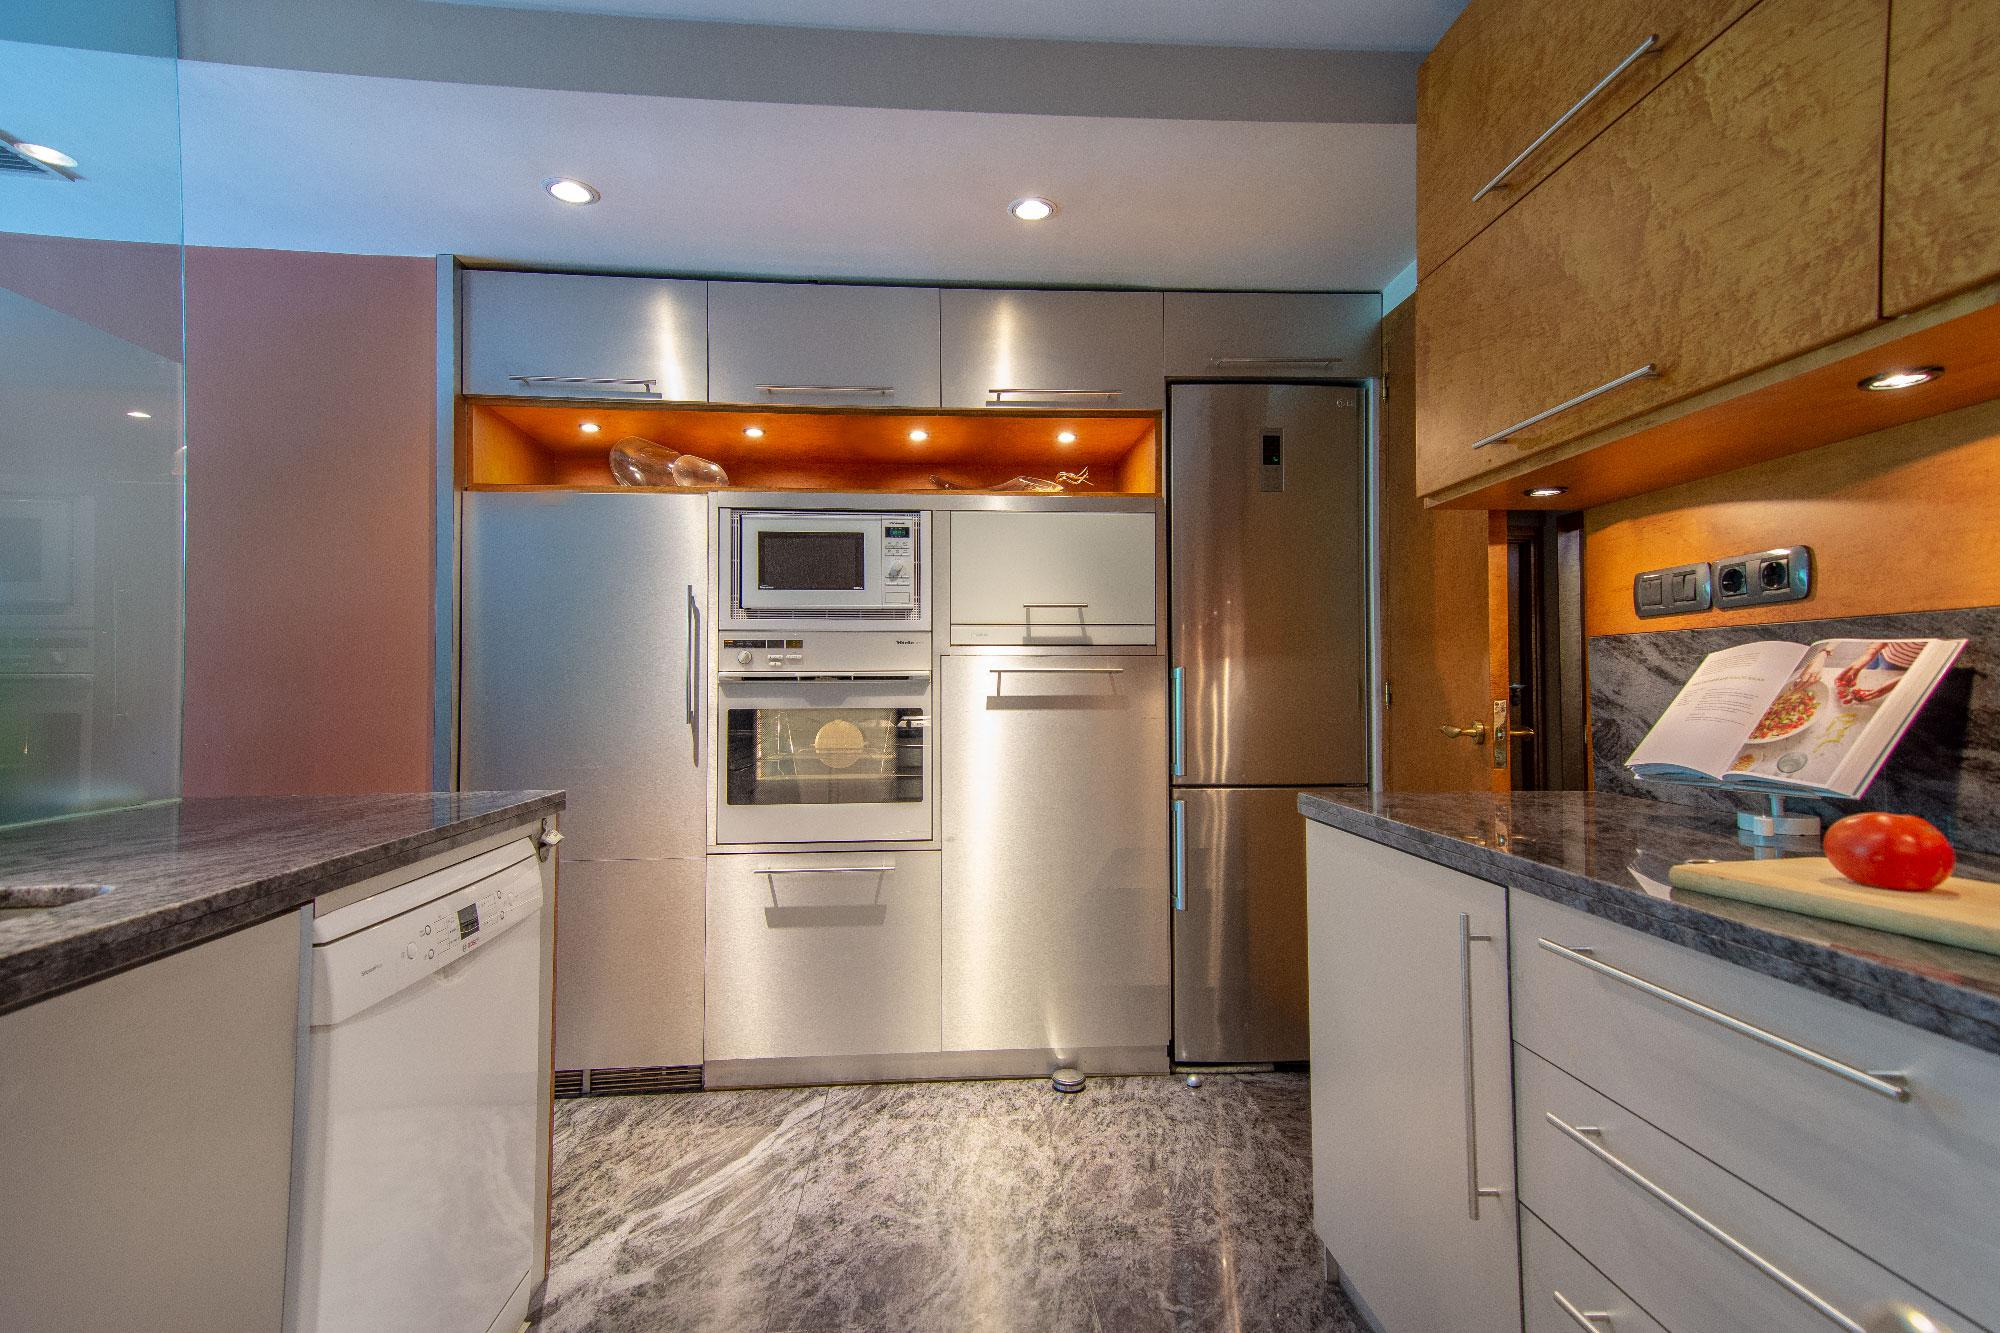 214424 House for sale in Les Corts, Pedralbes 5